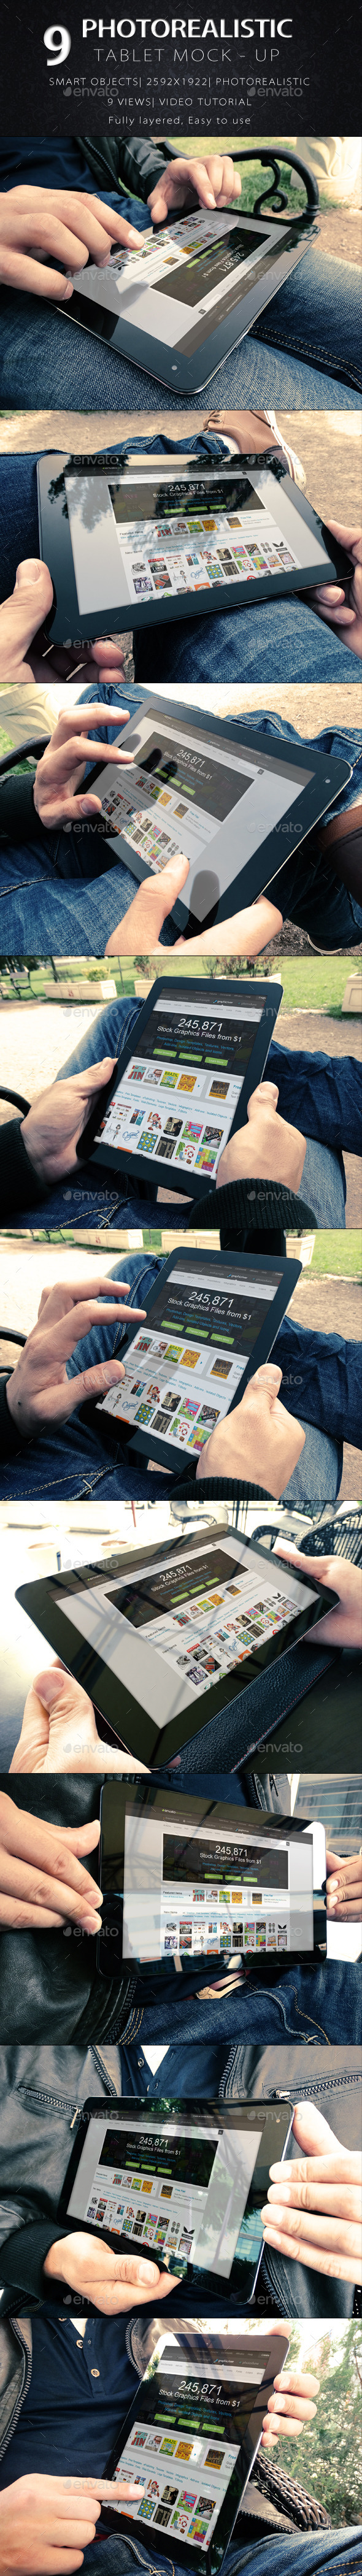 GraphicRiver 9 Photorealistic Tablet With Hands Mock-Up V2 8982561